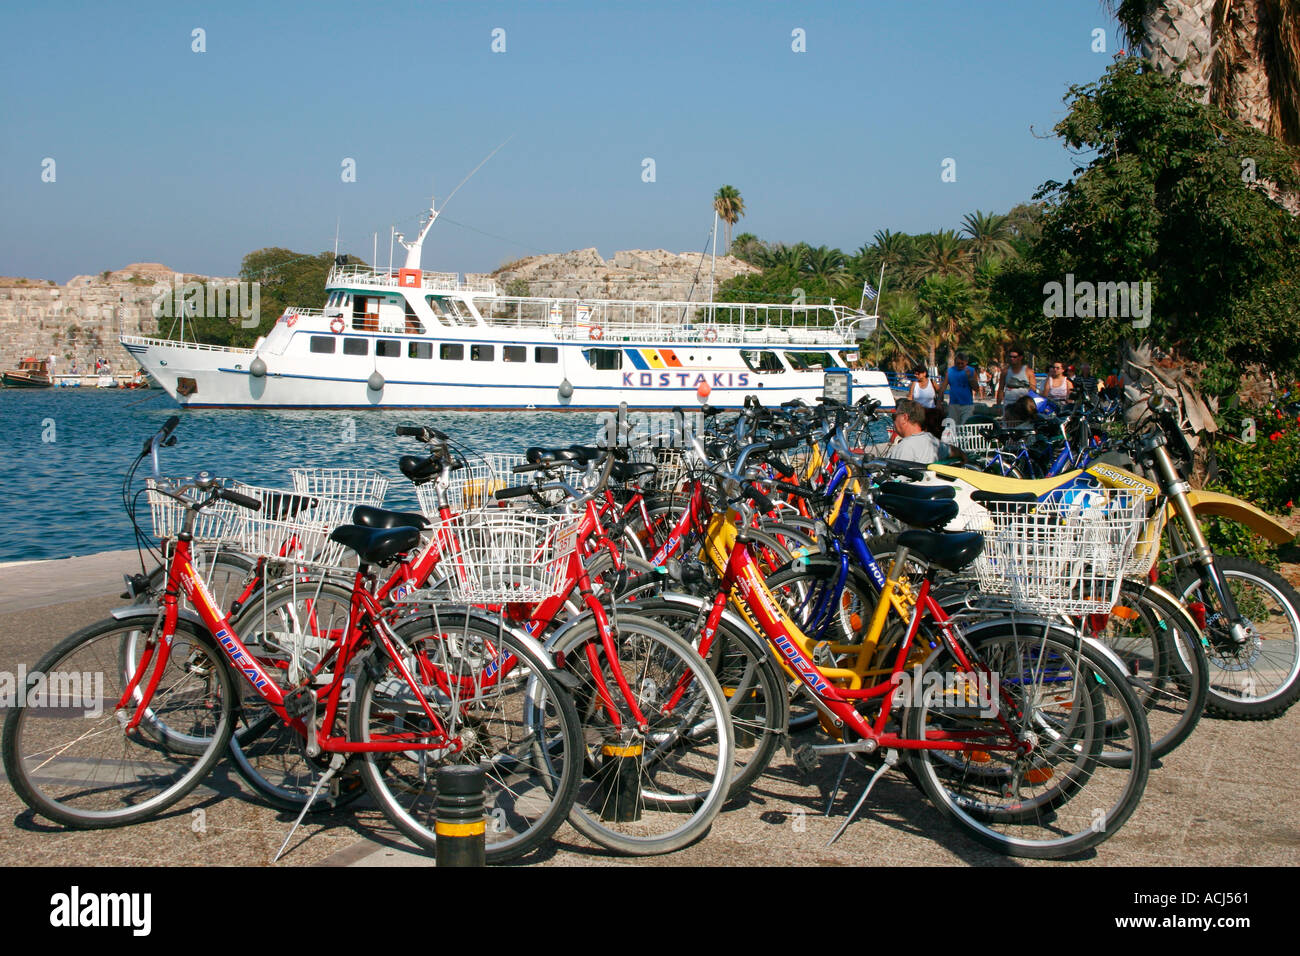 Bicycles parked along the water front of Kos town on the Greek island of Kos - Stock Image